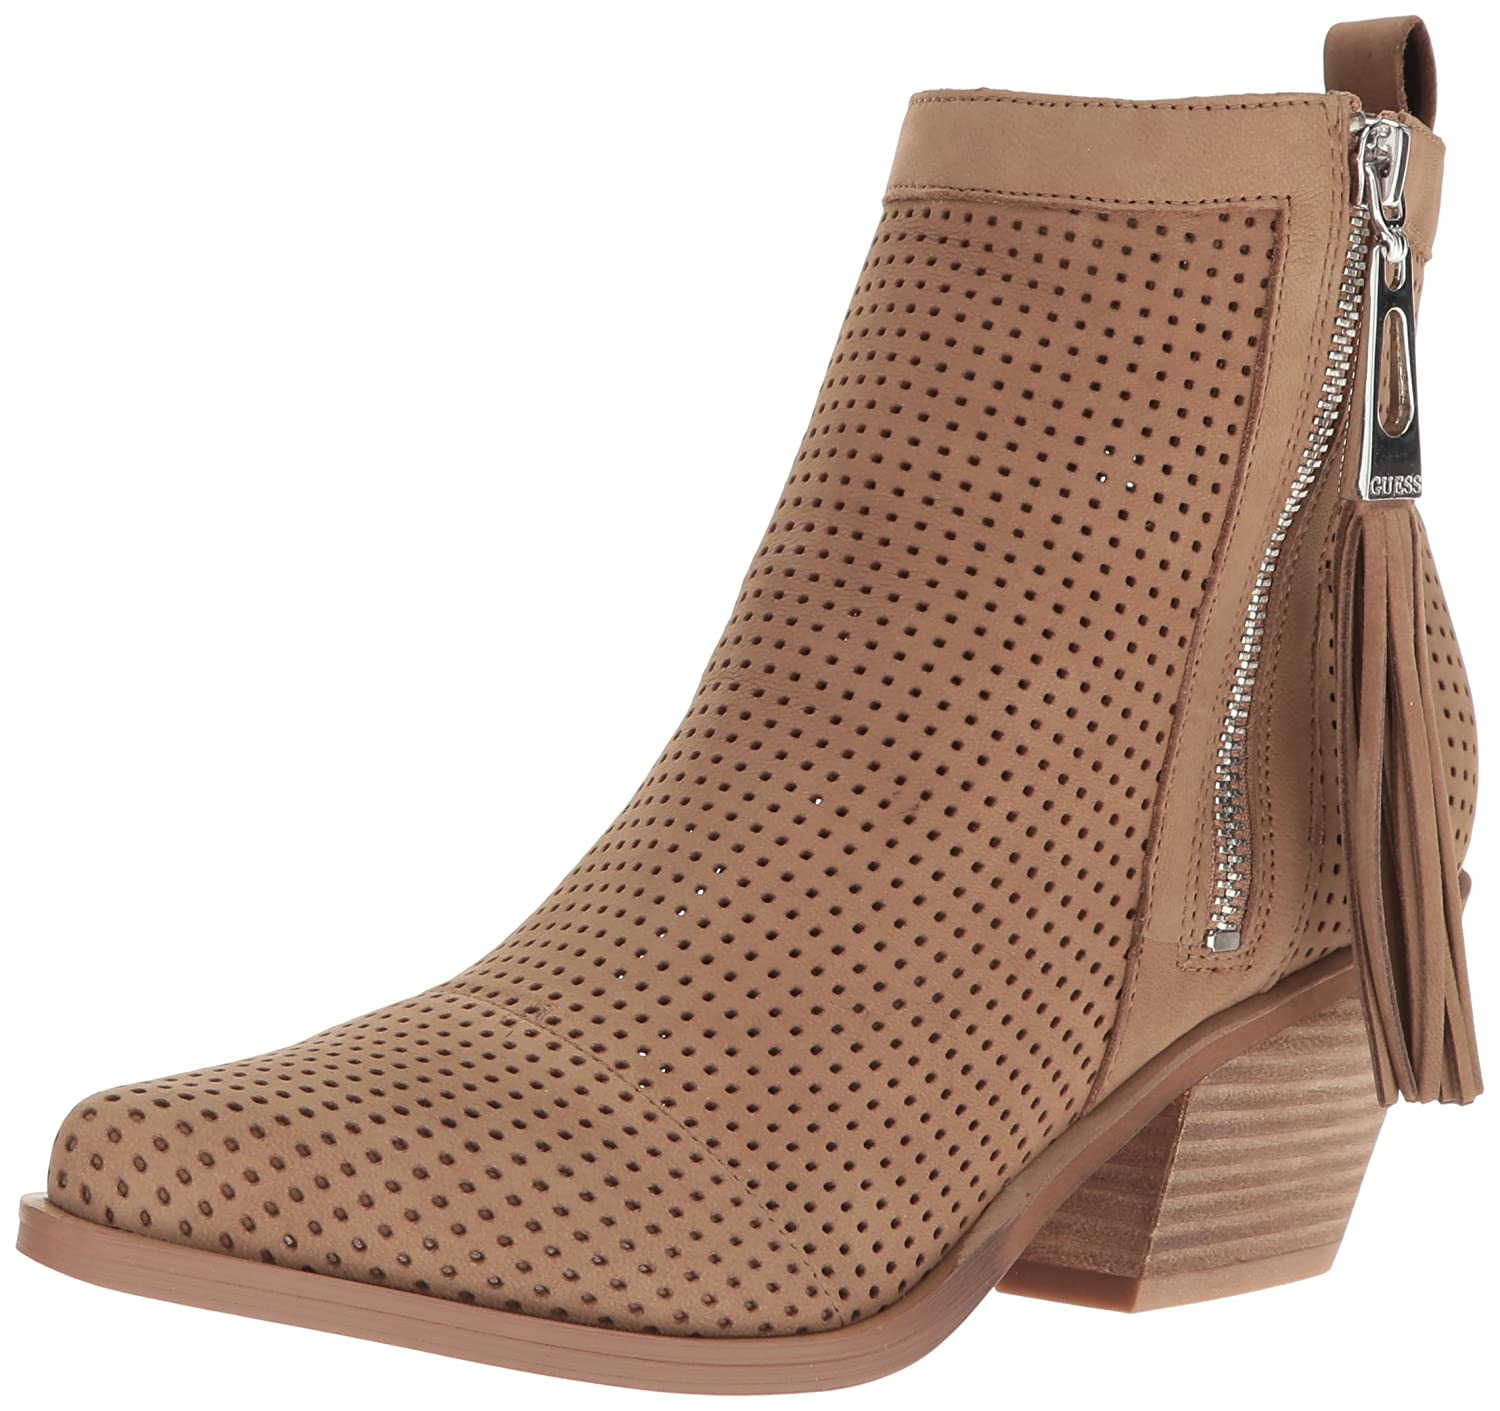 GUESS Women's Talzay Ankle Bootie Taupe